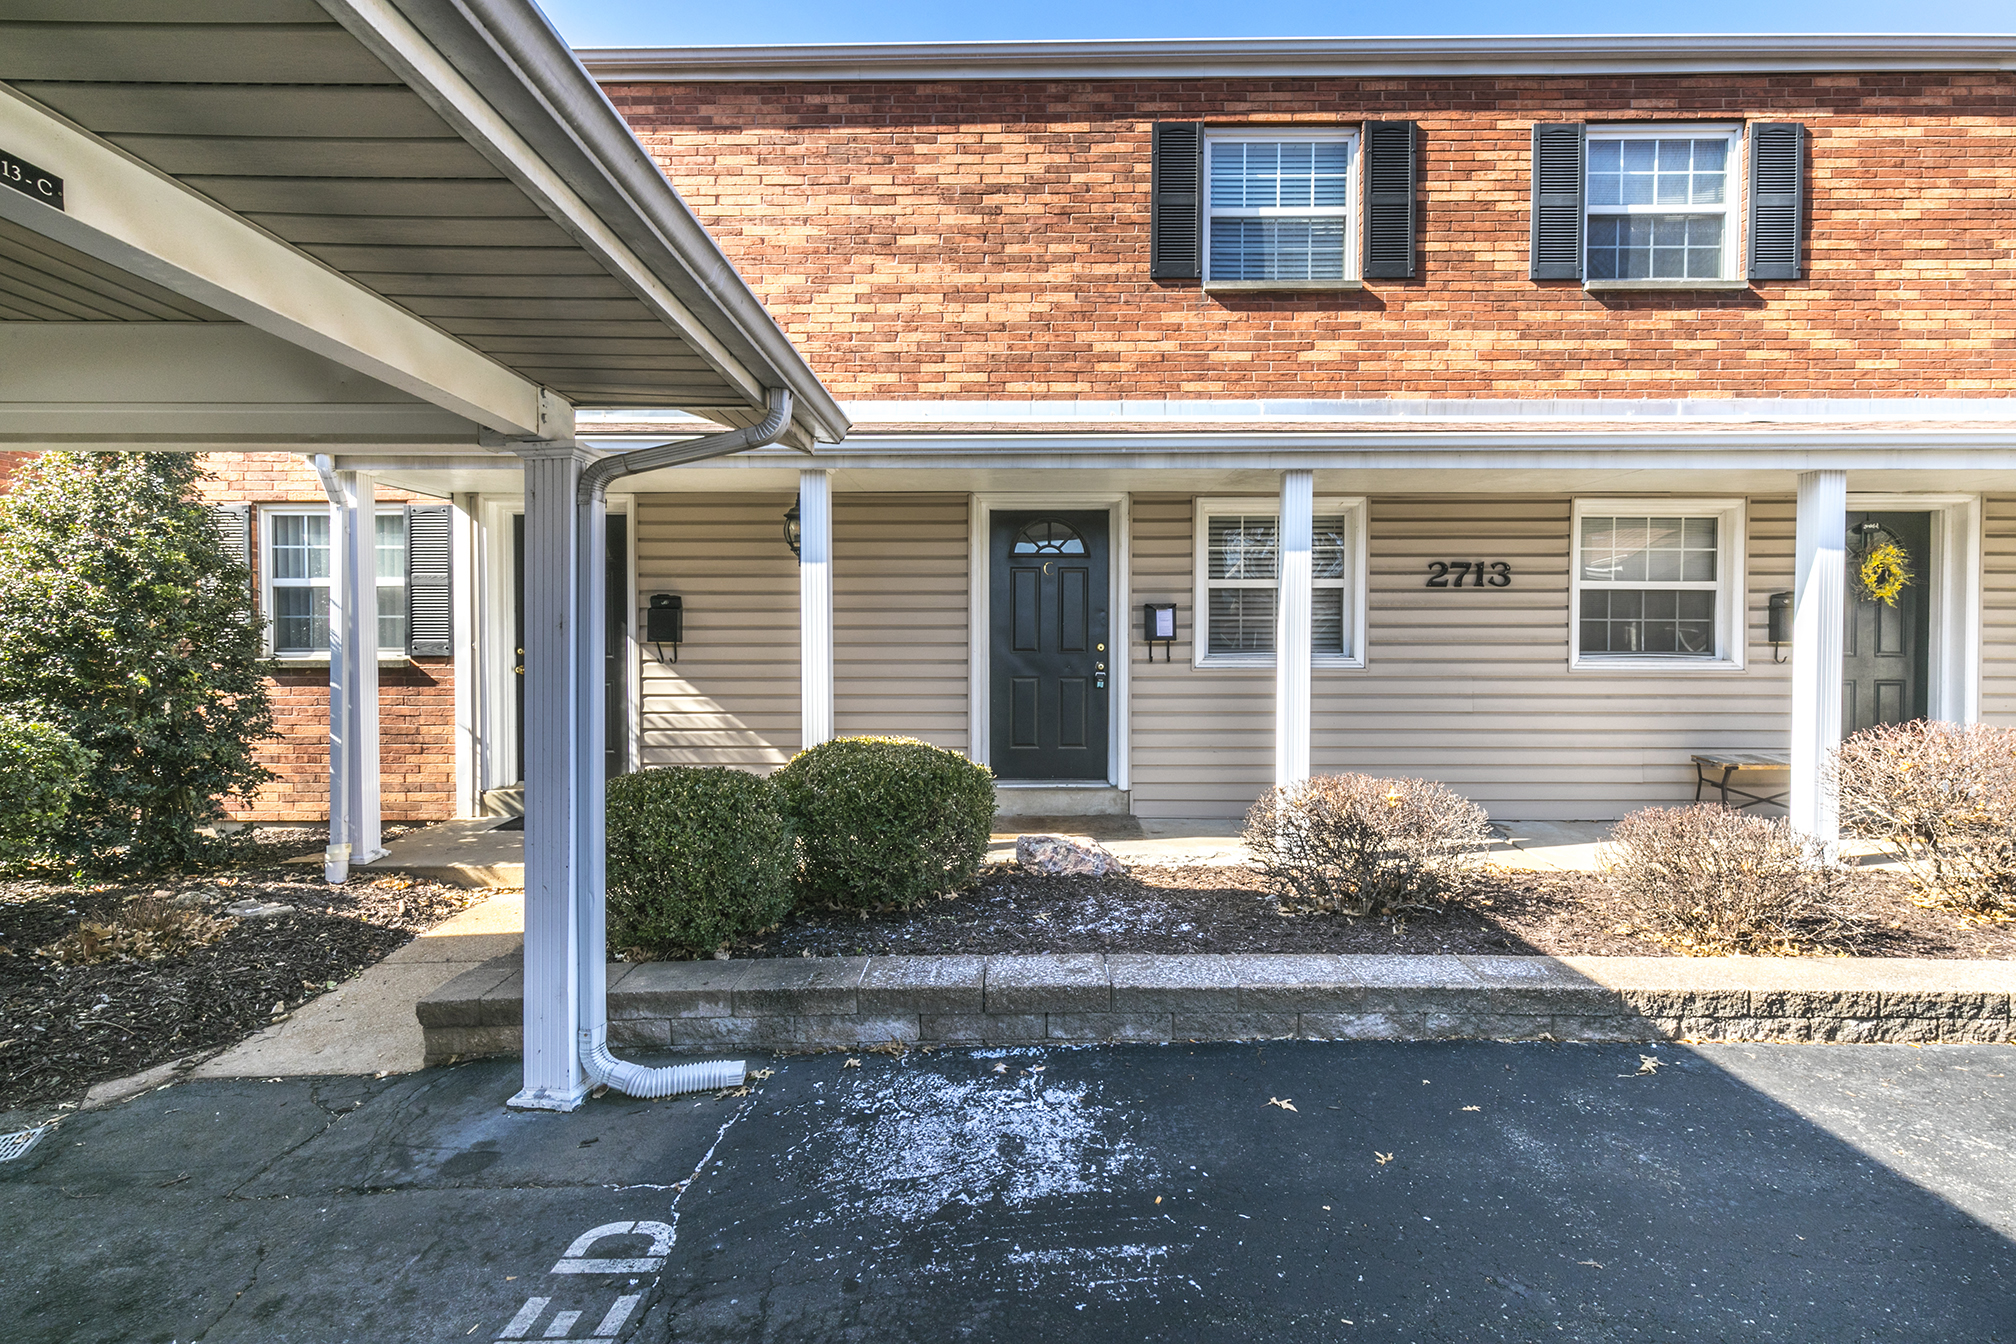 Maplewood – 2 bdrm/1.5 ba Townhome 2713 Laclede Station Rd #C 63143